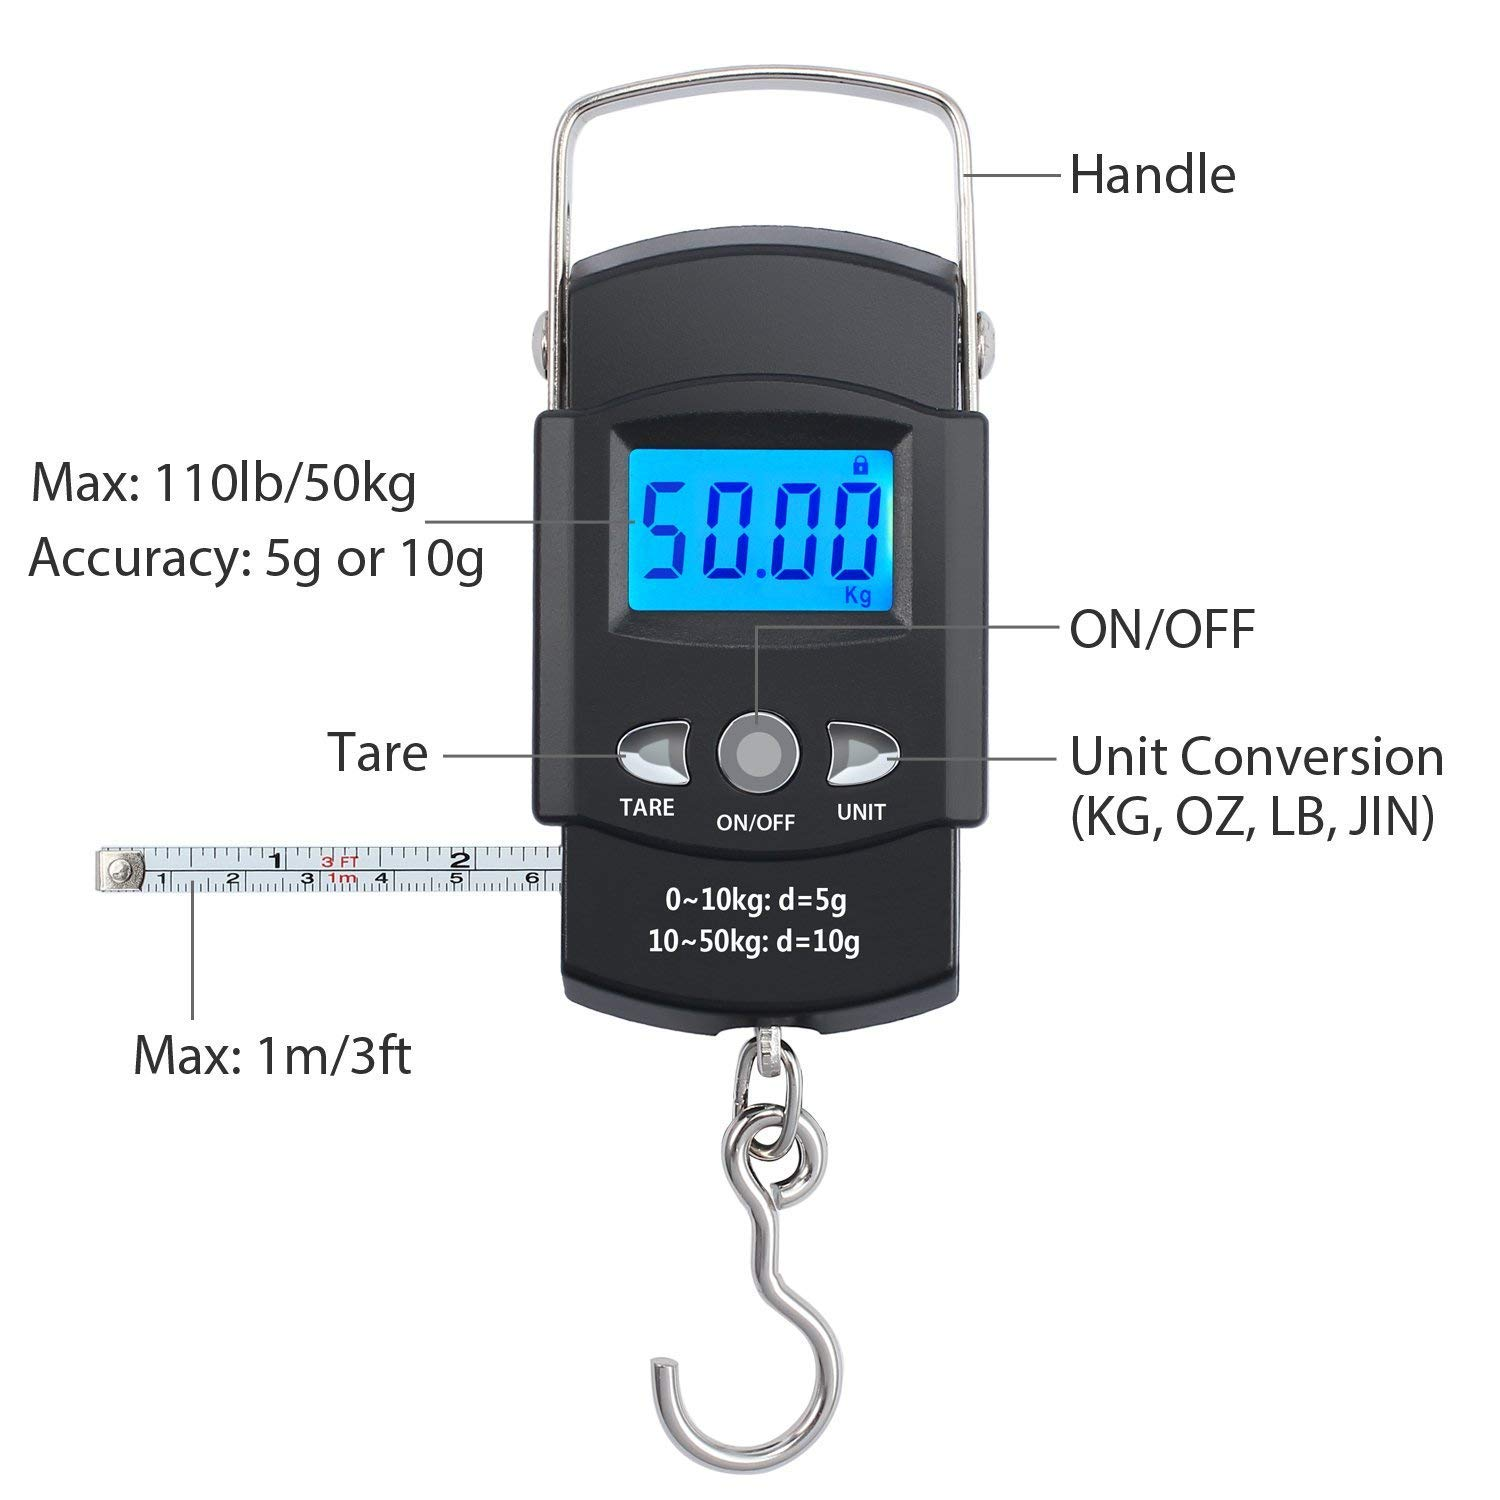 1a79ad44056f Tung Hsing Lon Fishing Scales Electronic Digital Postal Weighing Scale  Balance with Measure Tape 110lb/50kg, 2 pcs AAA Batteries Included